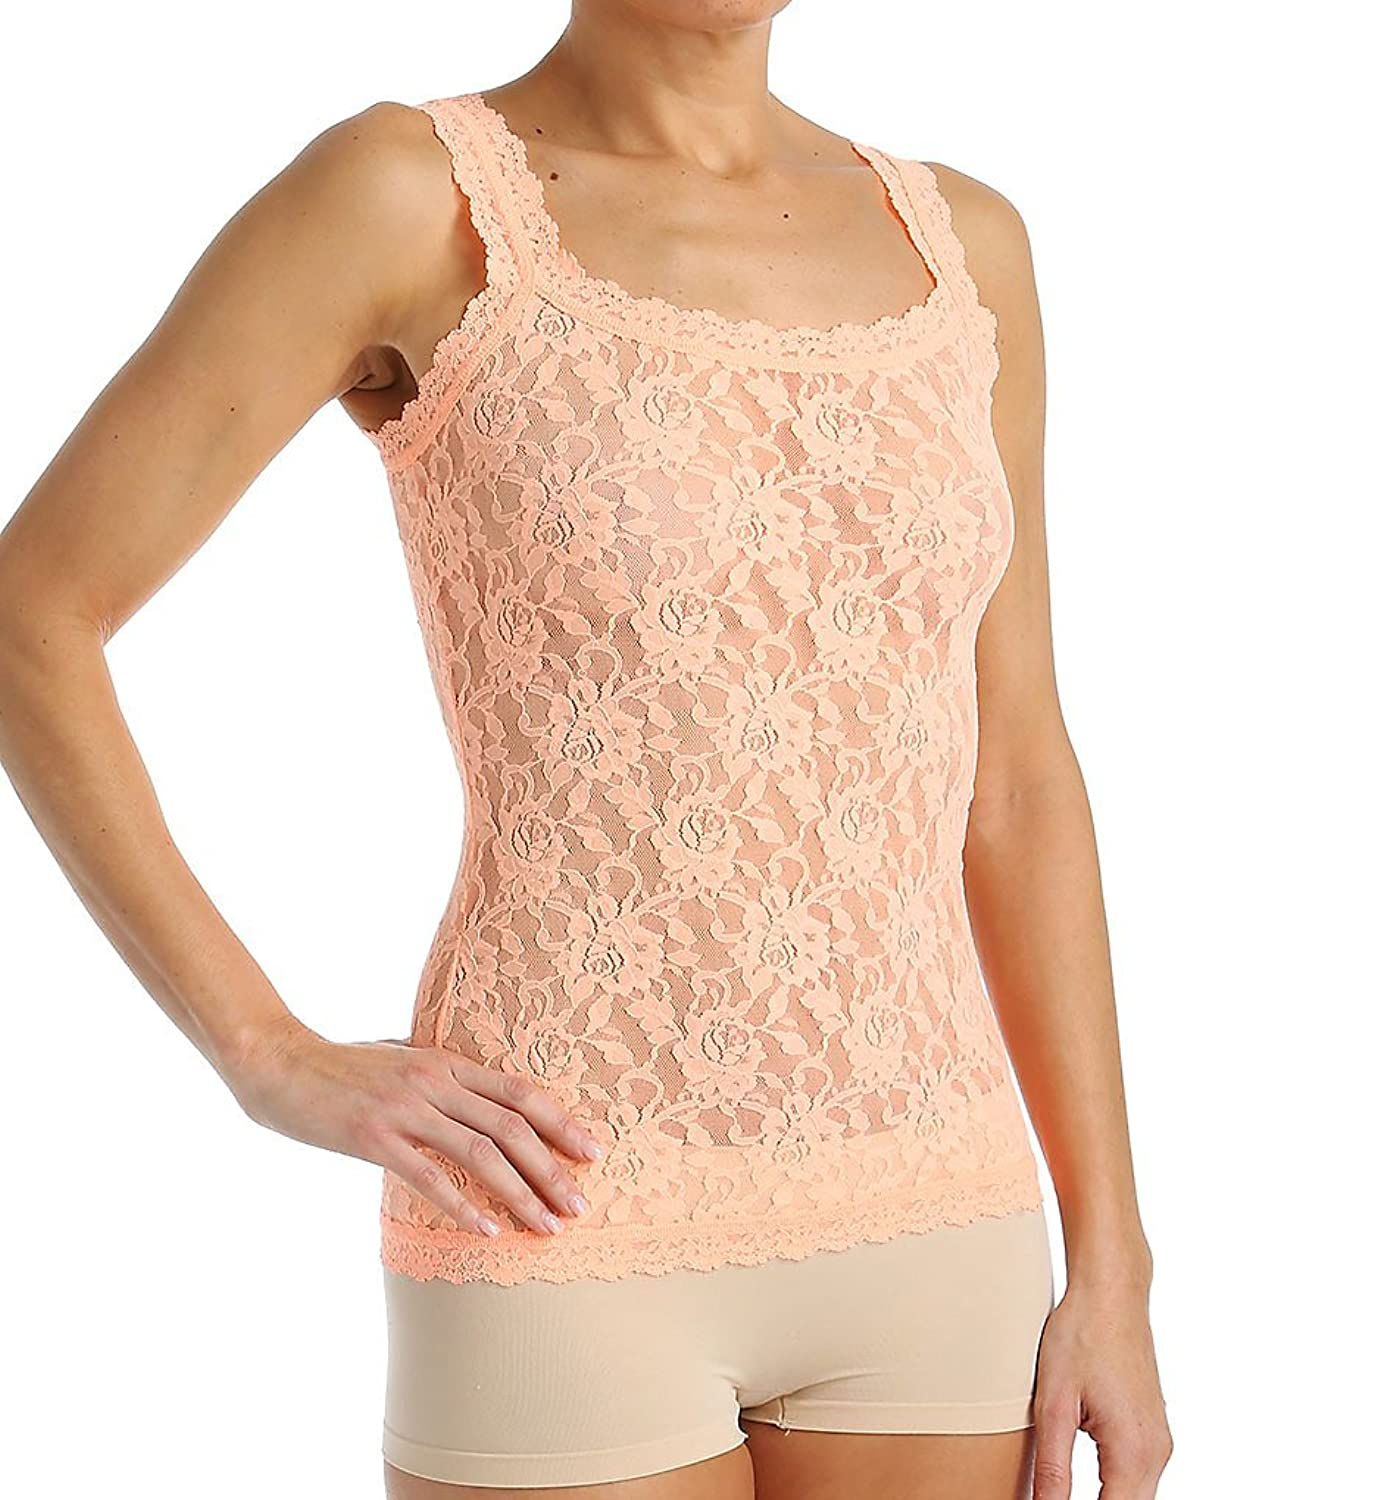 Hanky Panky Women's Signature Lace Unlined Camisole